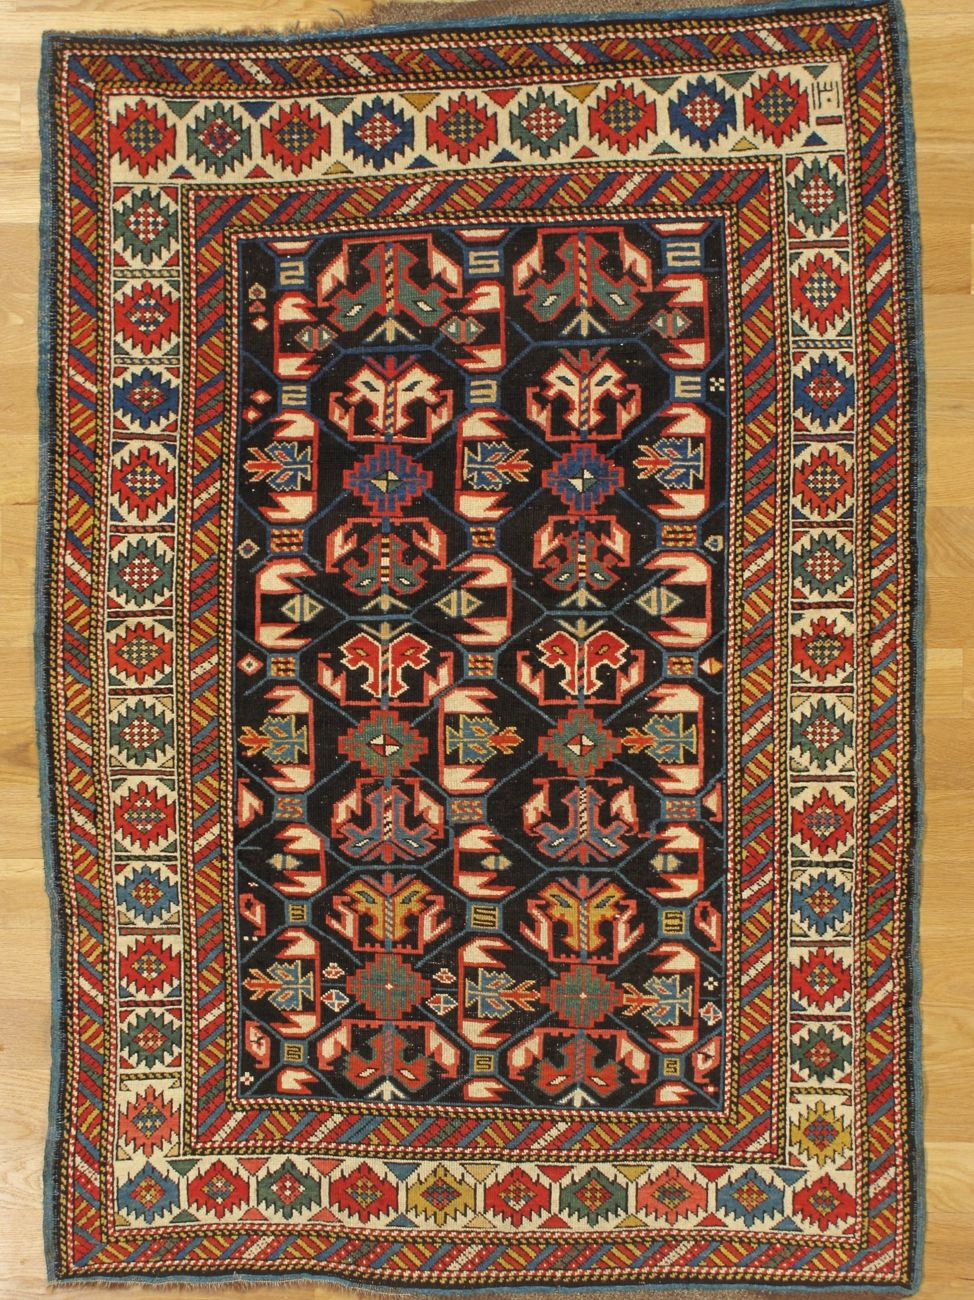 Kuba Rug From Eastern Caucasus West Coast Of The Caspian Sea Age Dated 1301 1883 Size 5 1 X3 5 155x104 Cm Antique Rugs Rugs Asian Rugs